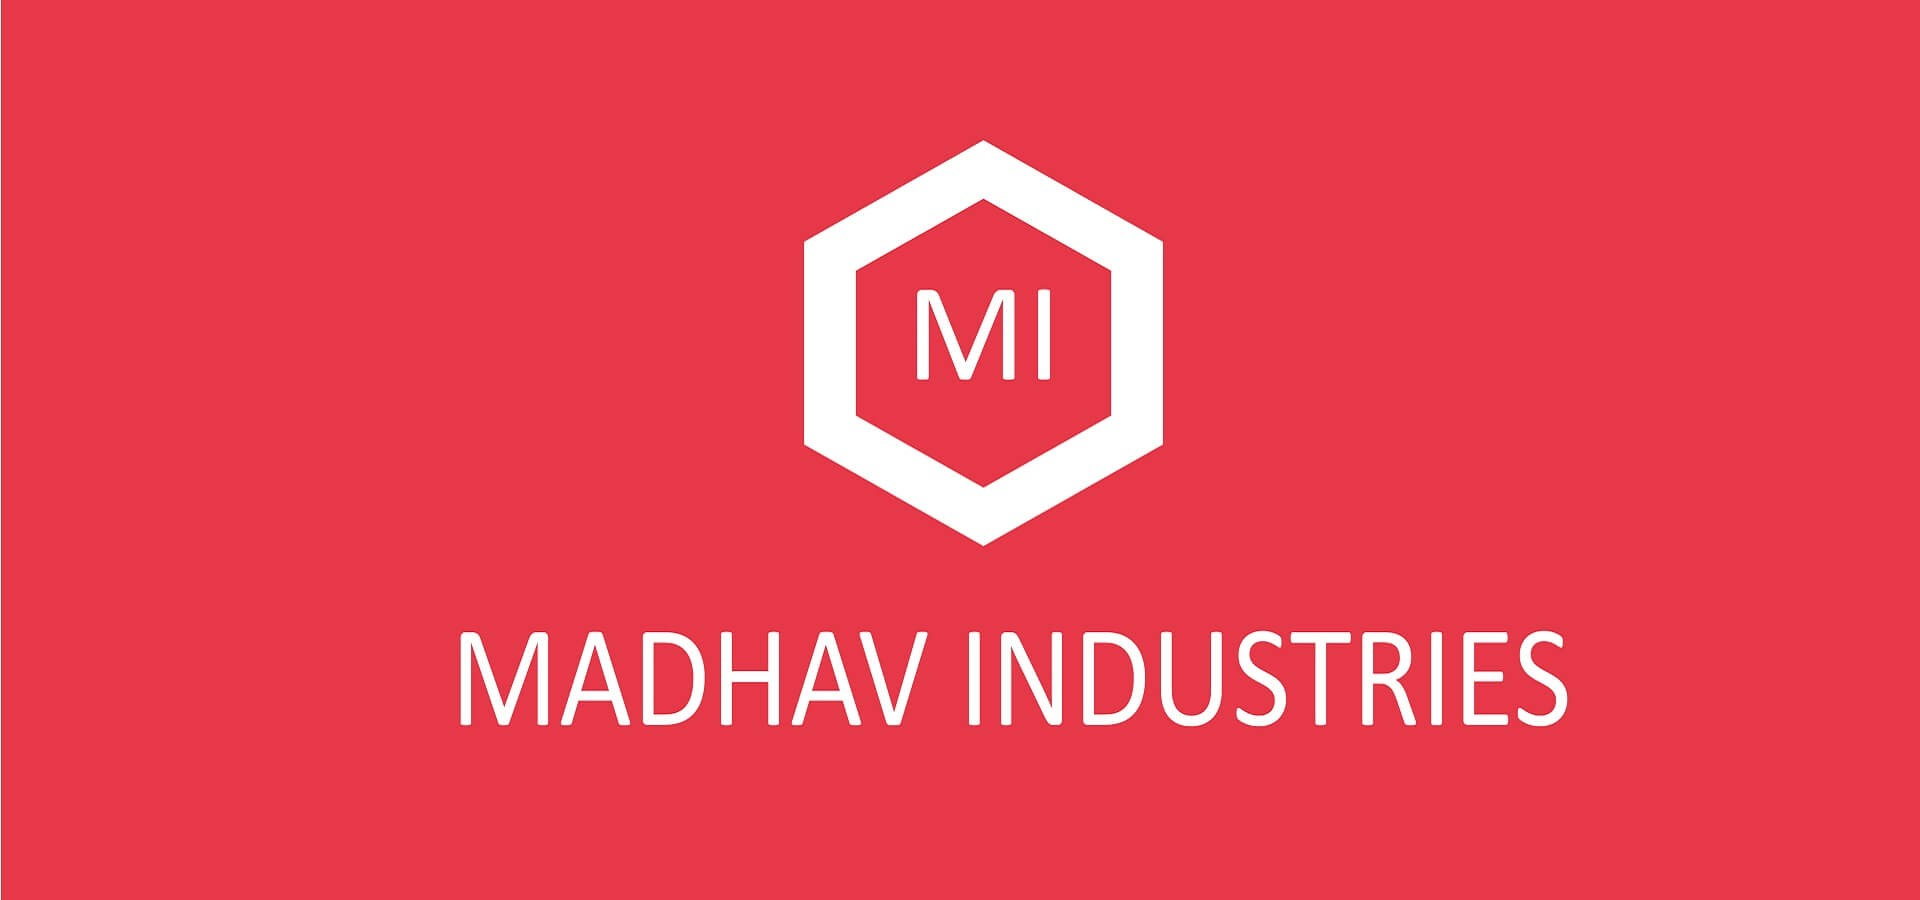 Branding for Madhav Industries